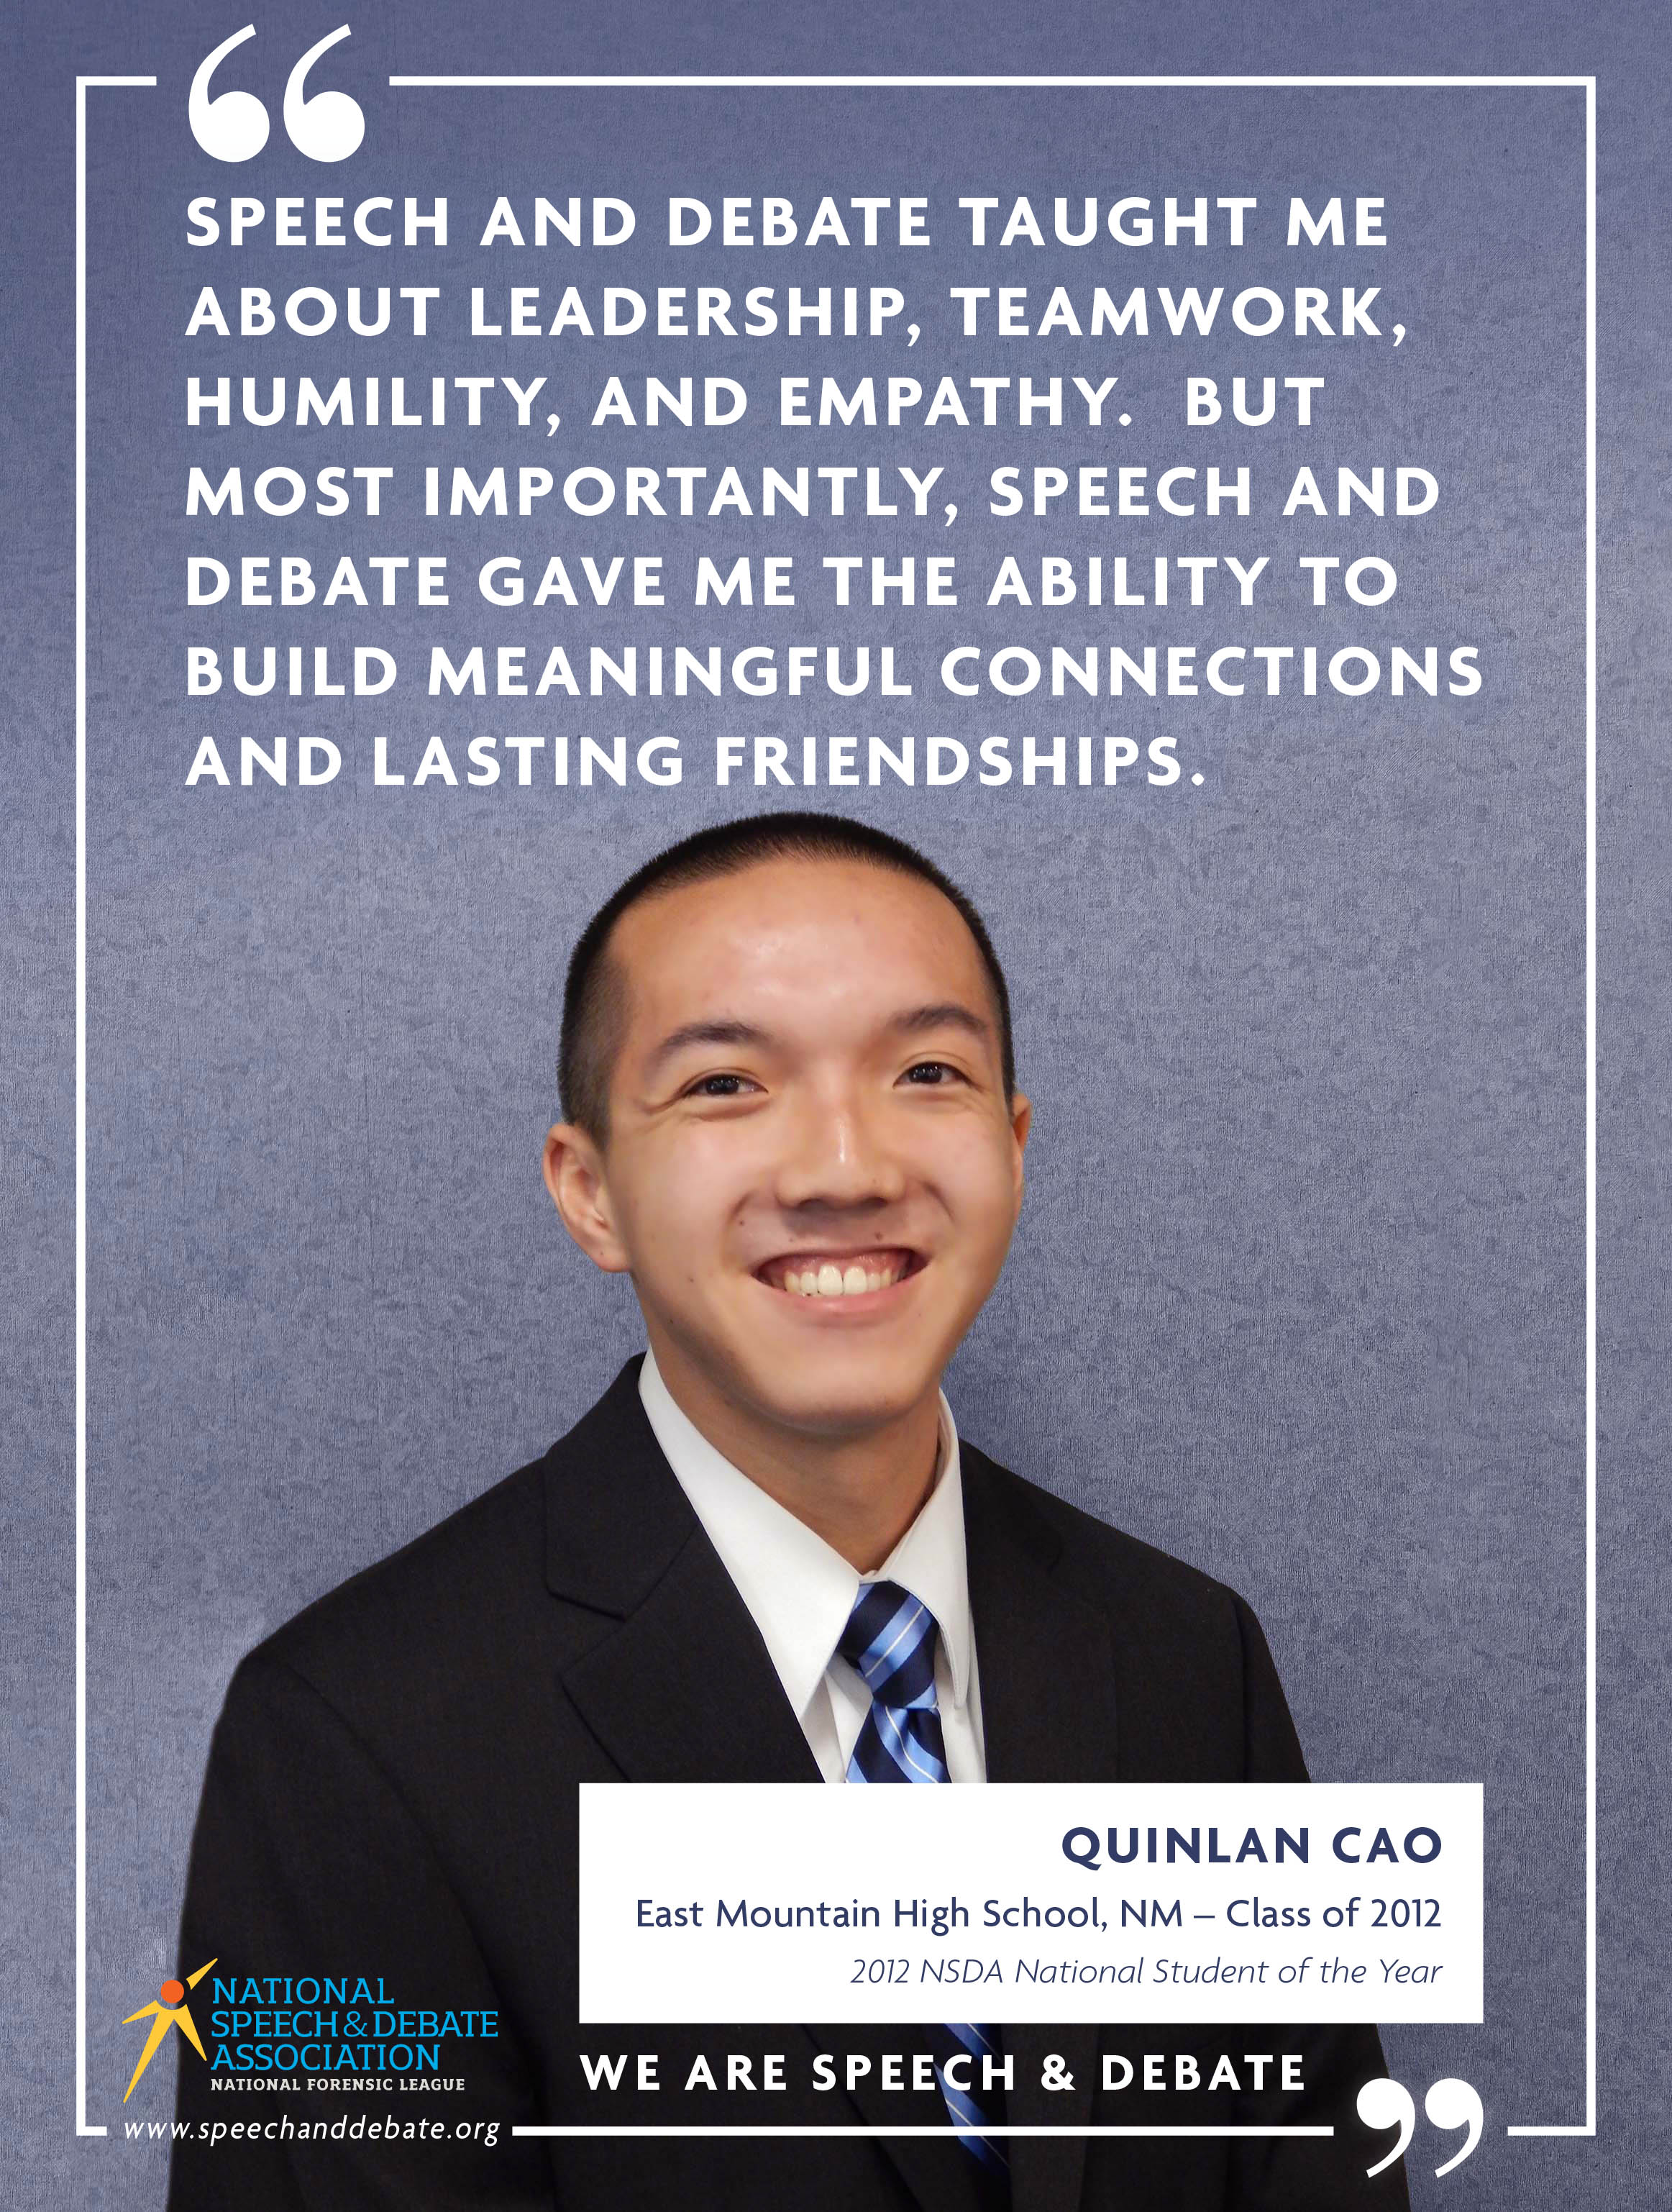 SPEECH AND DEBATE TAUGHT ME ABOUT LEADERSHIP, TEAMWORK, HUMILITY, AND EMPATHY. BUT MOST IMPORTANTLY, SPEECH AND DEBATE GAVE ME THE ABILITY TO BUILD MEANINGFUL CONNECTIONS AND LASTING FRIENDSHIPS. - Quinlan Cao.